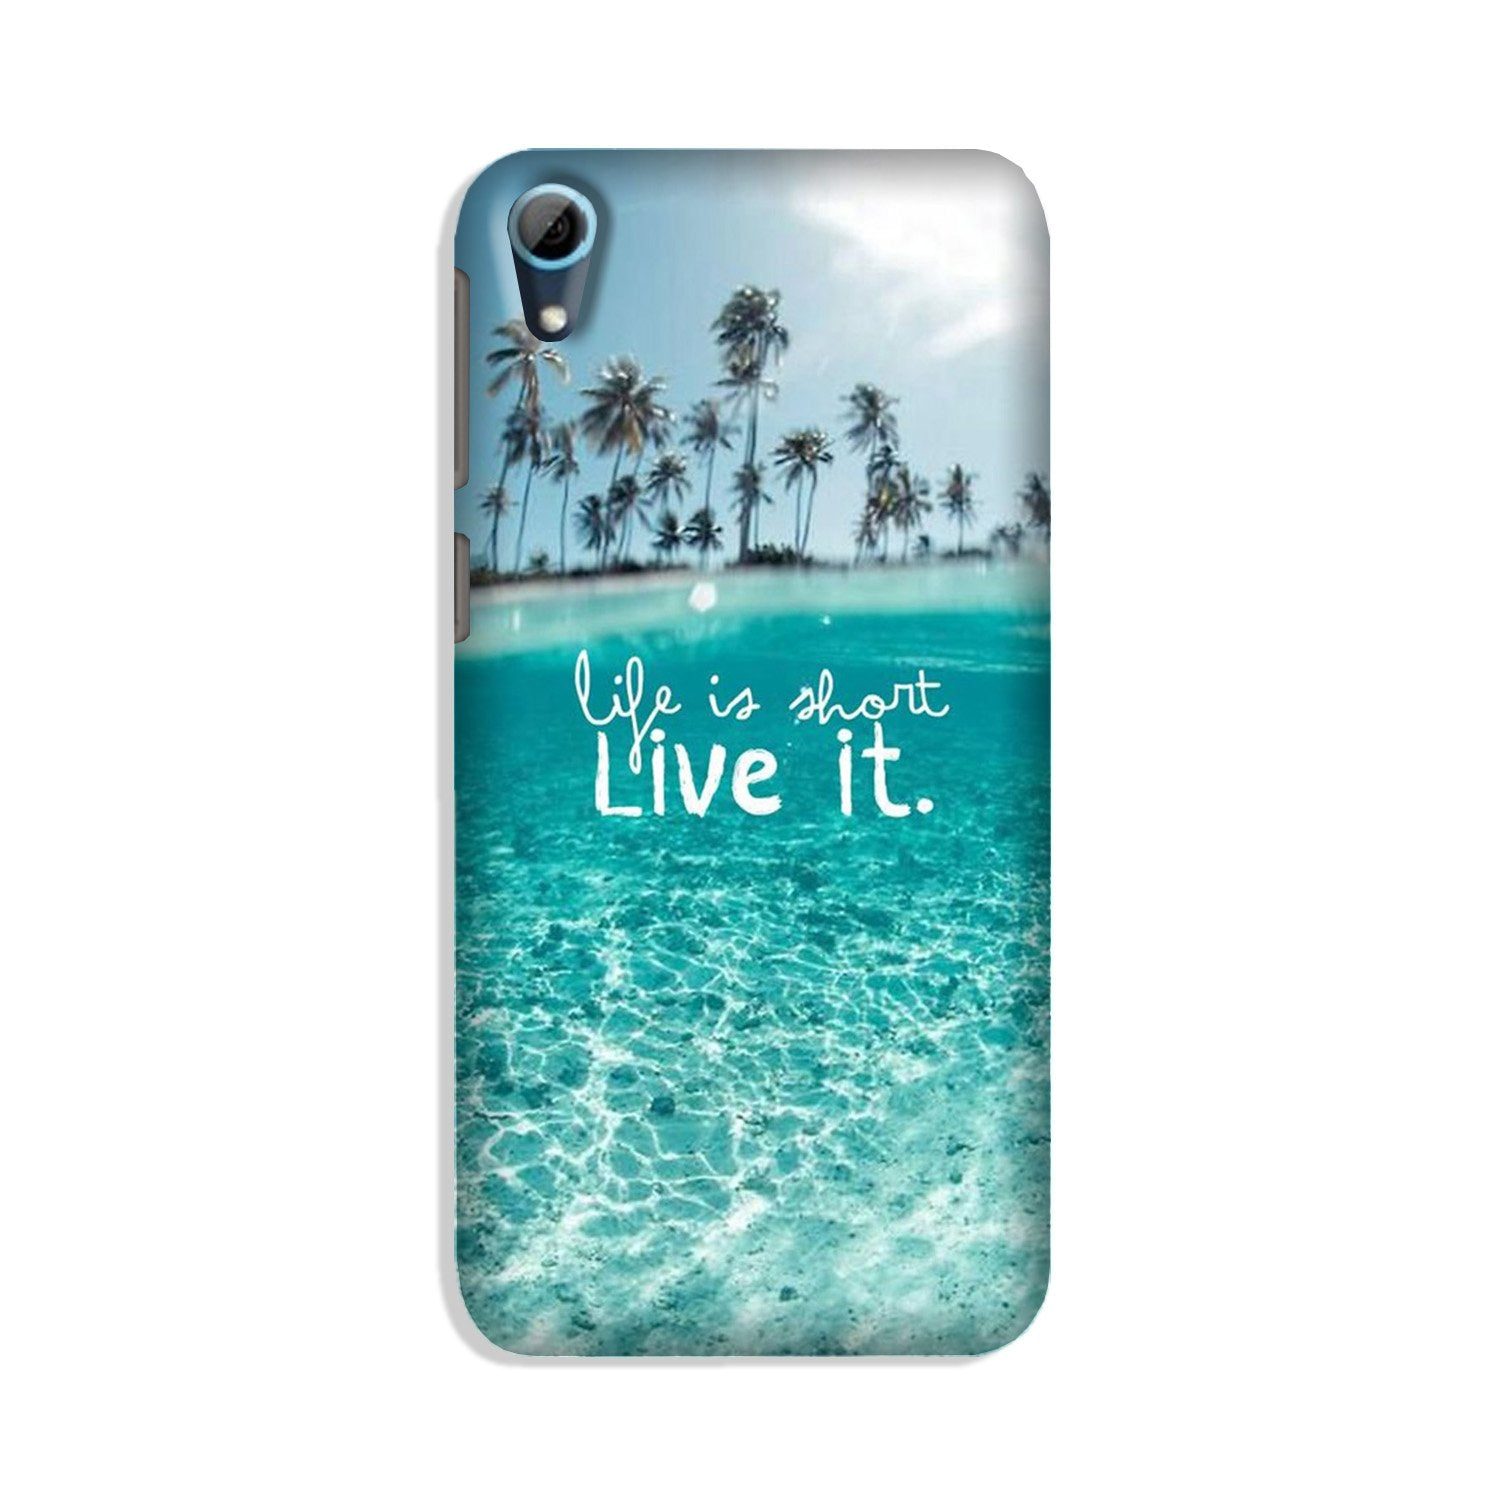 Life is short live it Case for HTC Desire 826